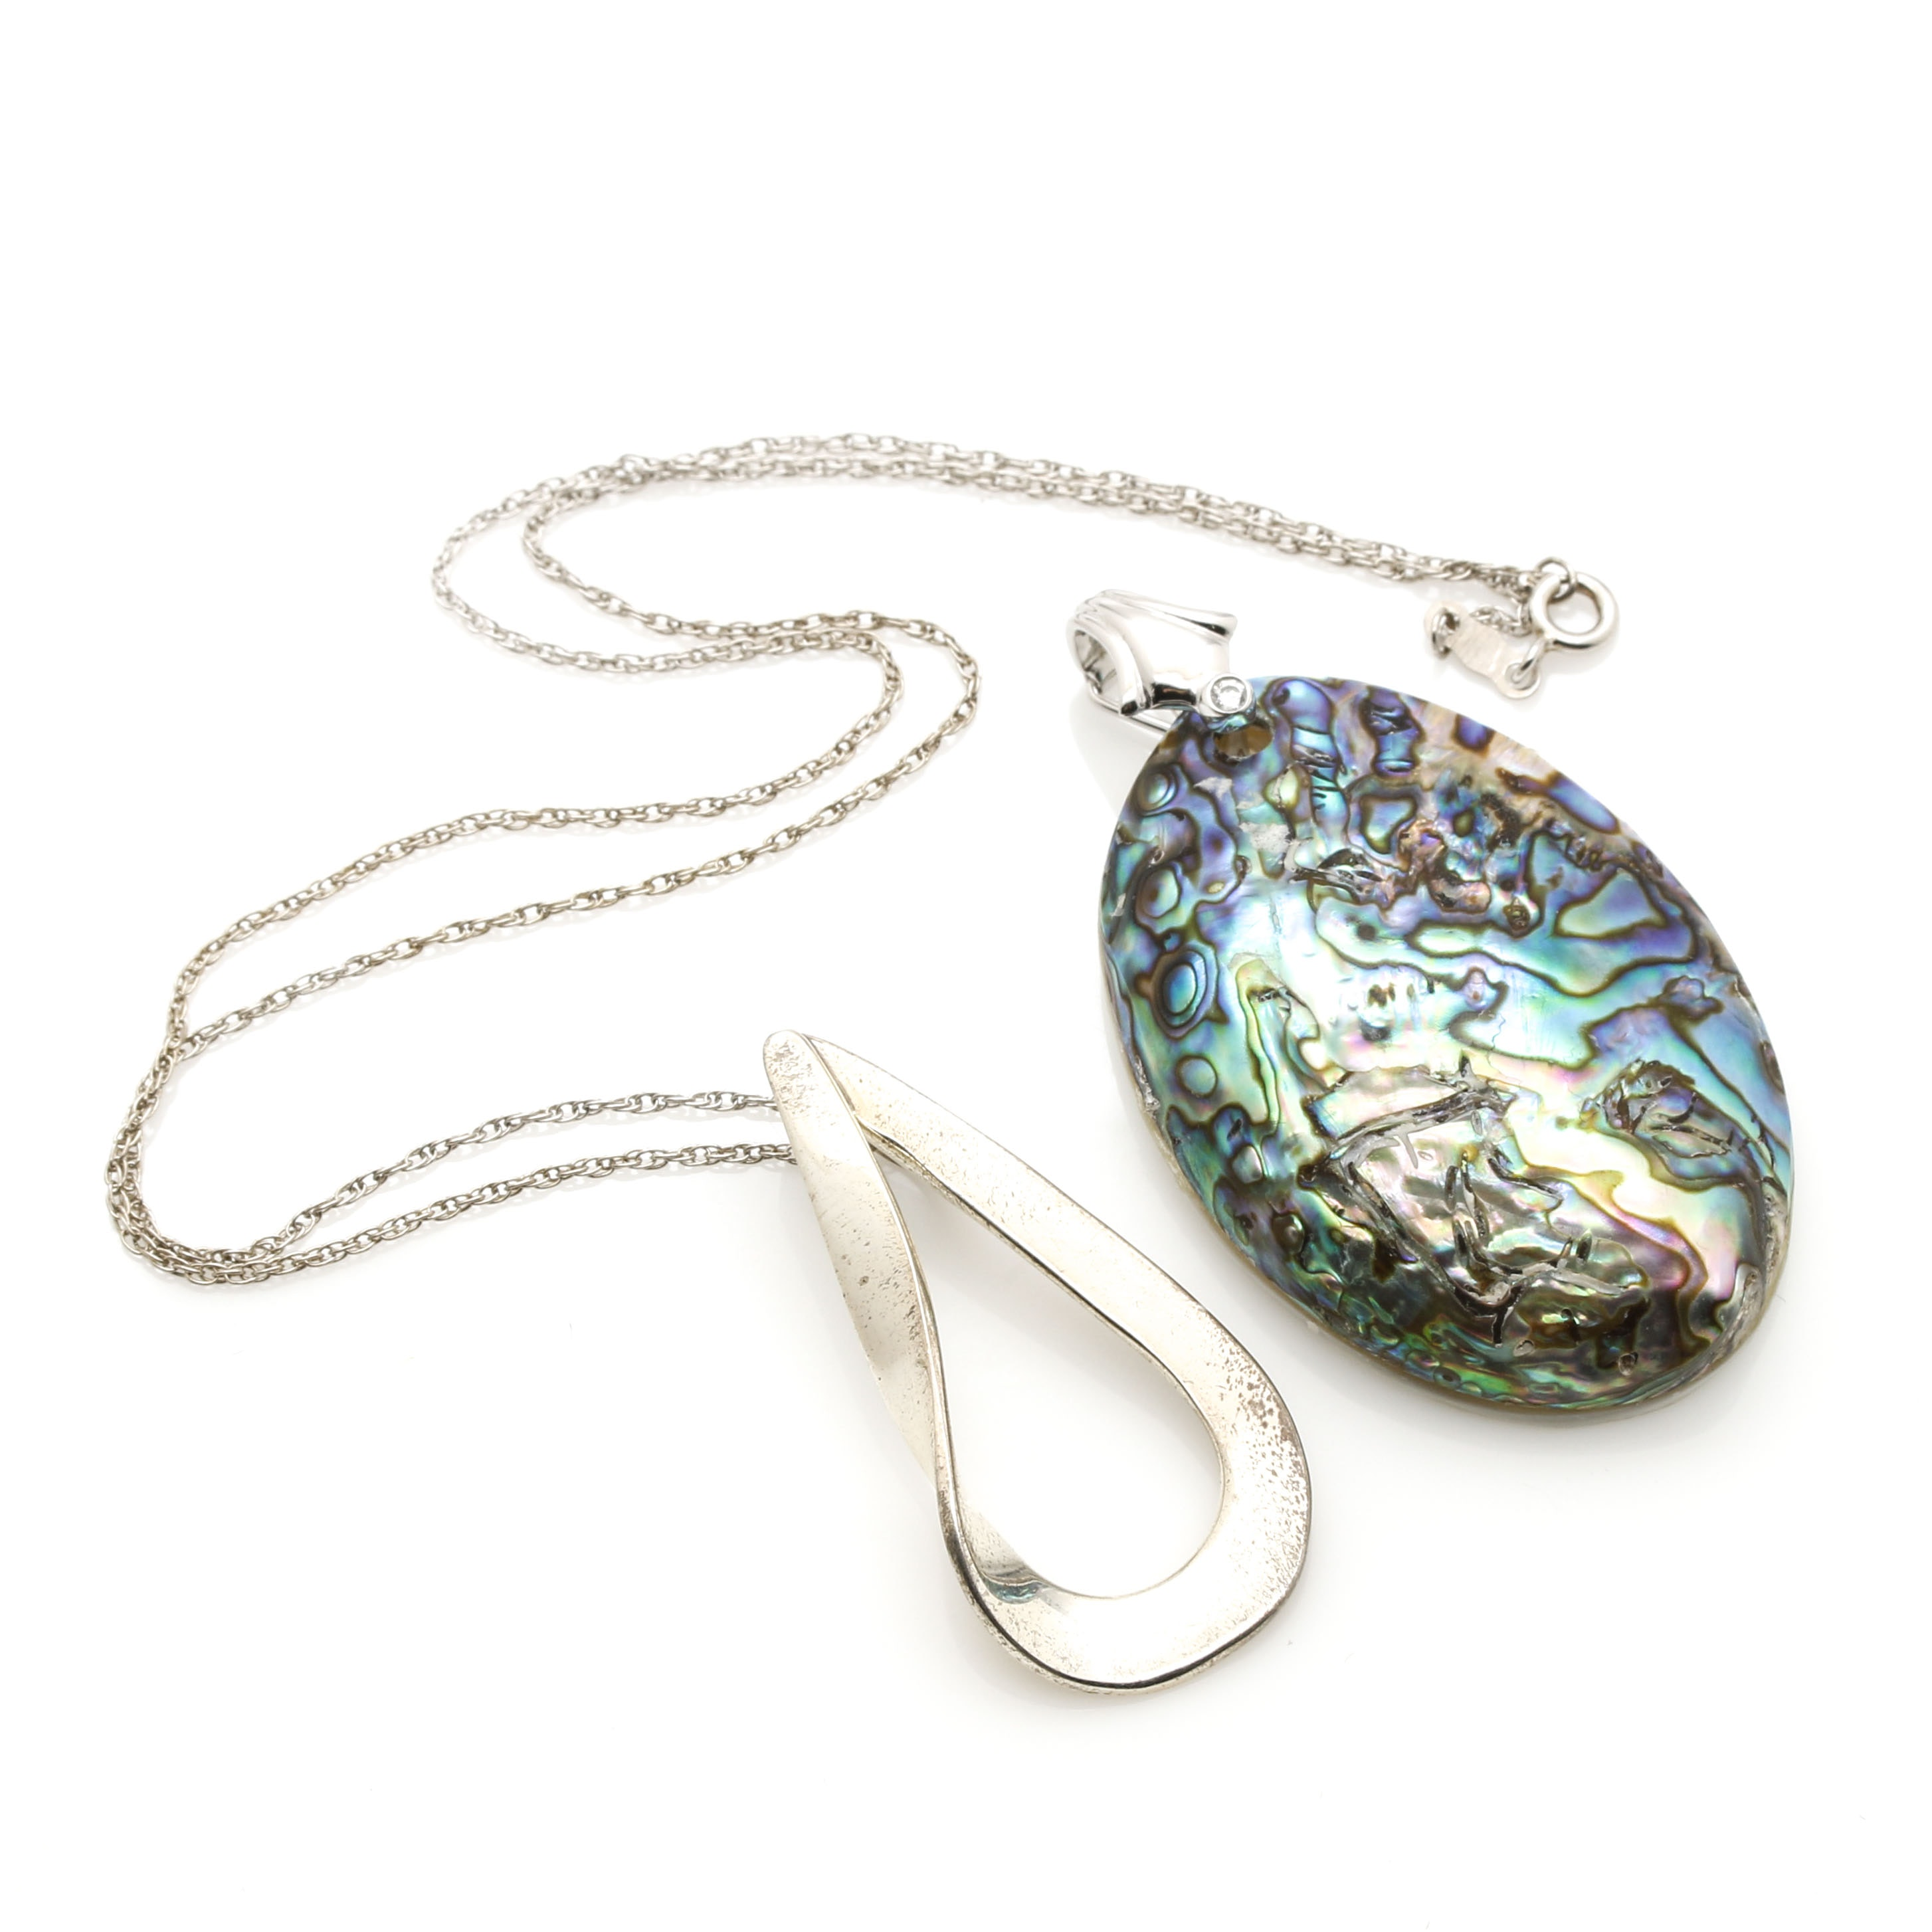 Sterling Silver Necklace and Pendant With Abalone